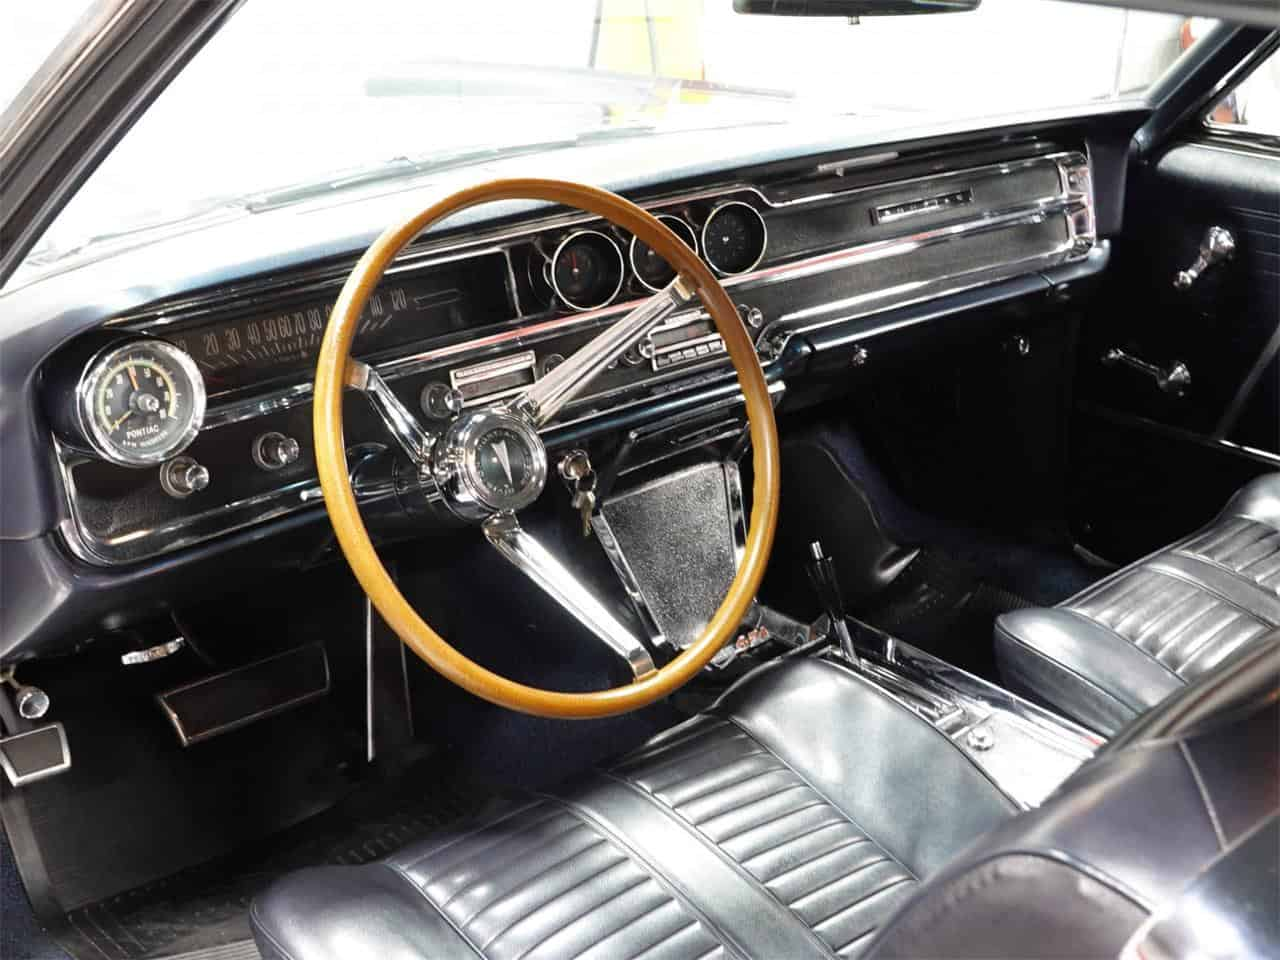 , Pick of the Day: 1965 Pontiac Catalina 2+2, the GTO's big brother, ClassicCars.com Journal